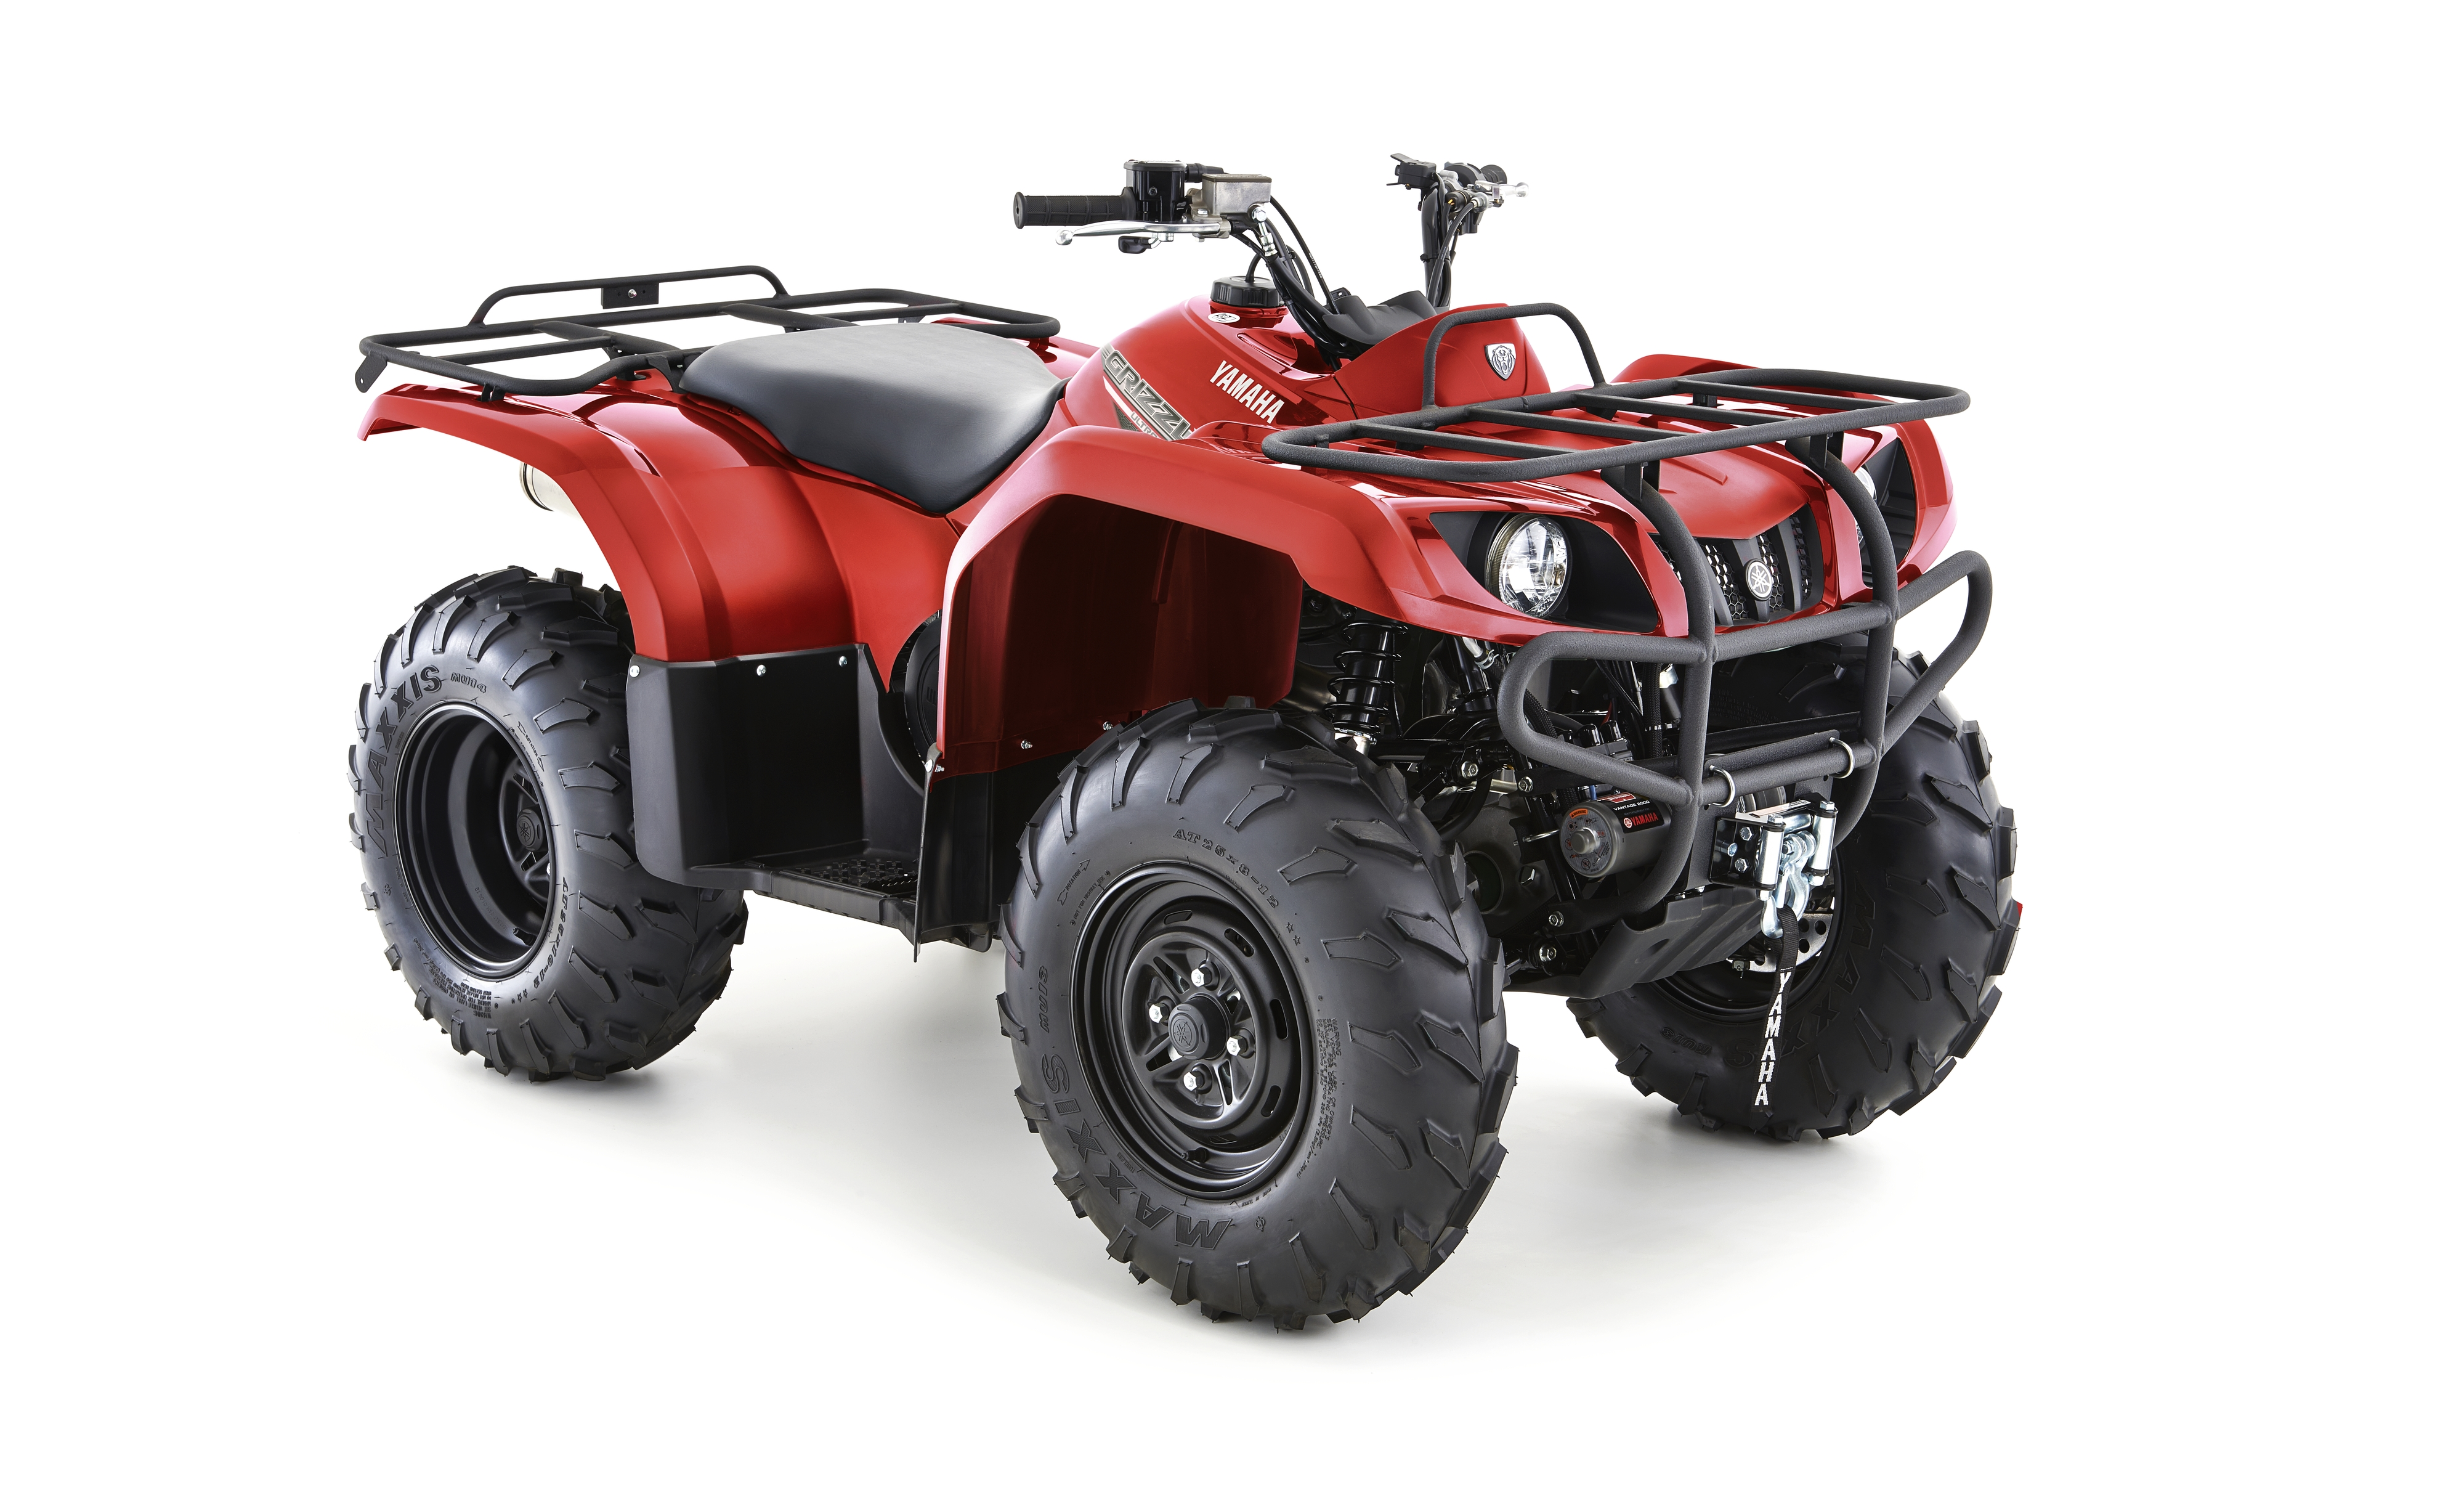 Yamaha Grizzly 350 2 WD quad